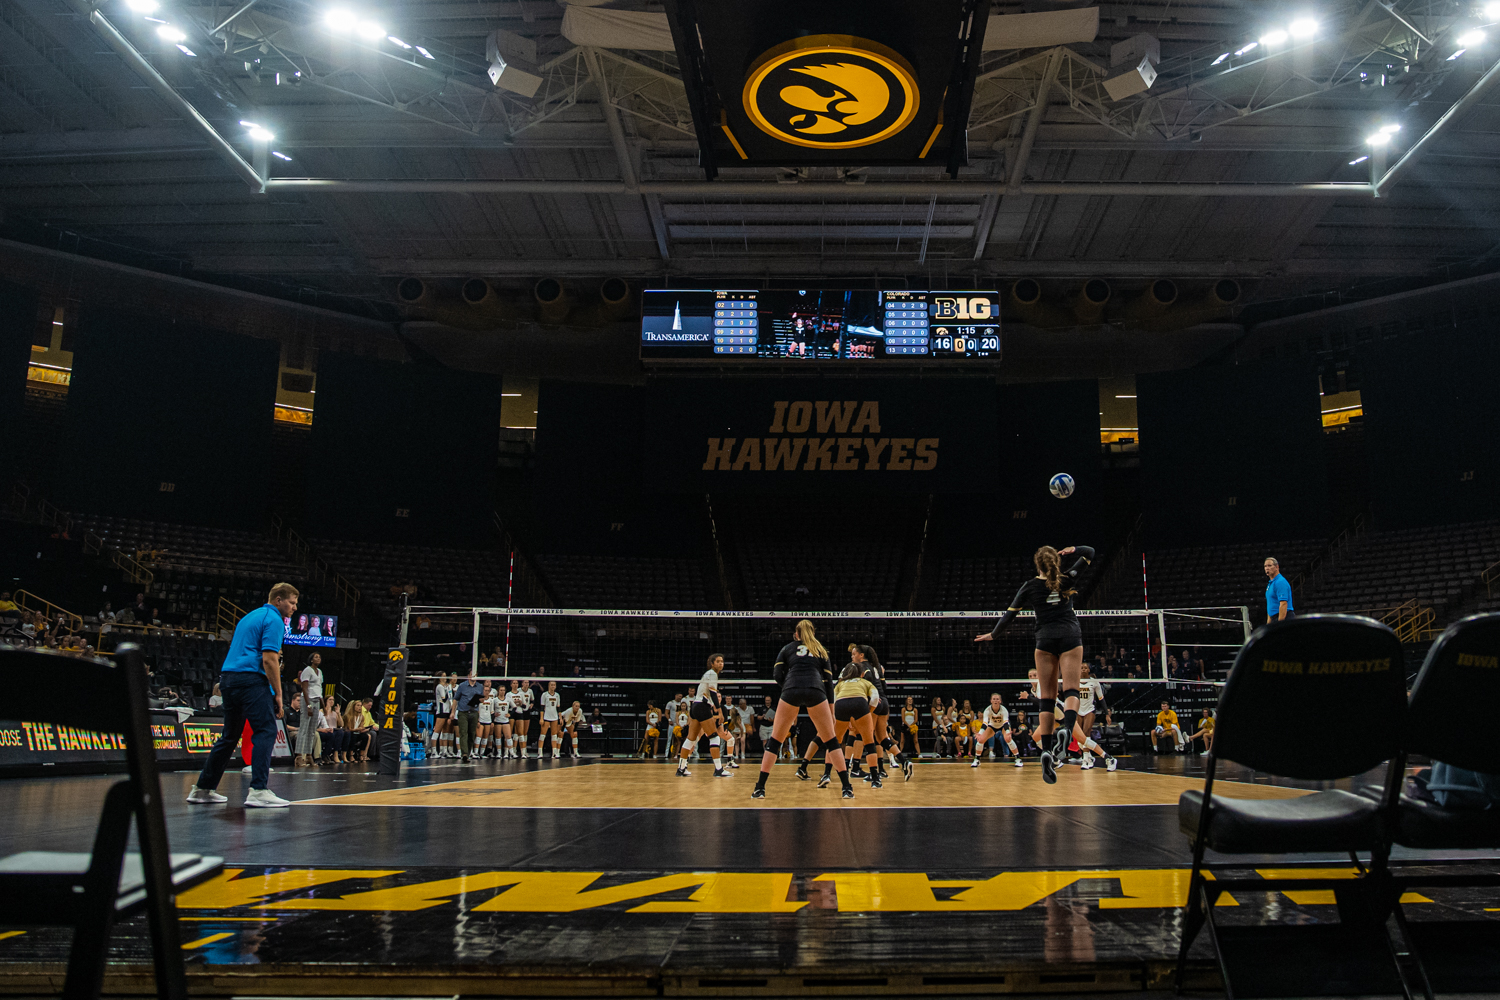 Colorado+setter+Jenna+Ewert+serves+the+ball+during+a+volleyball+match+between+Iowa+and+Colorado+in+Carver-Hawkeye+Arena+on+Friday%2C+September+6%2C+2019.+The+Hawkeyes+dropped+their+season+opener+to+the+Buffaloes%2C+3-0.